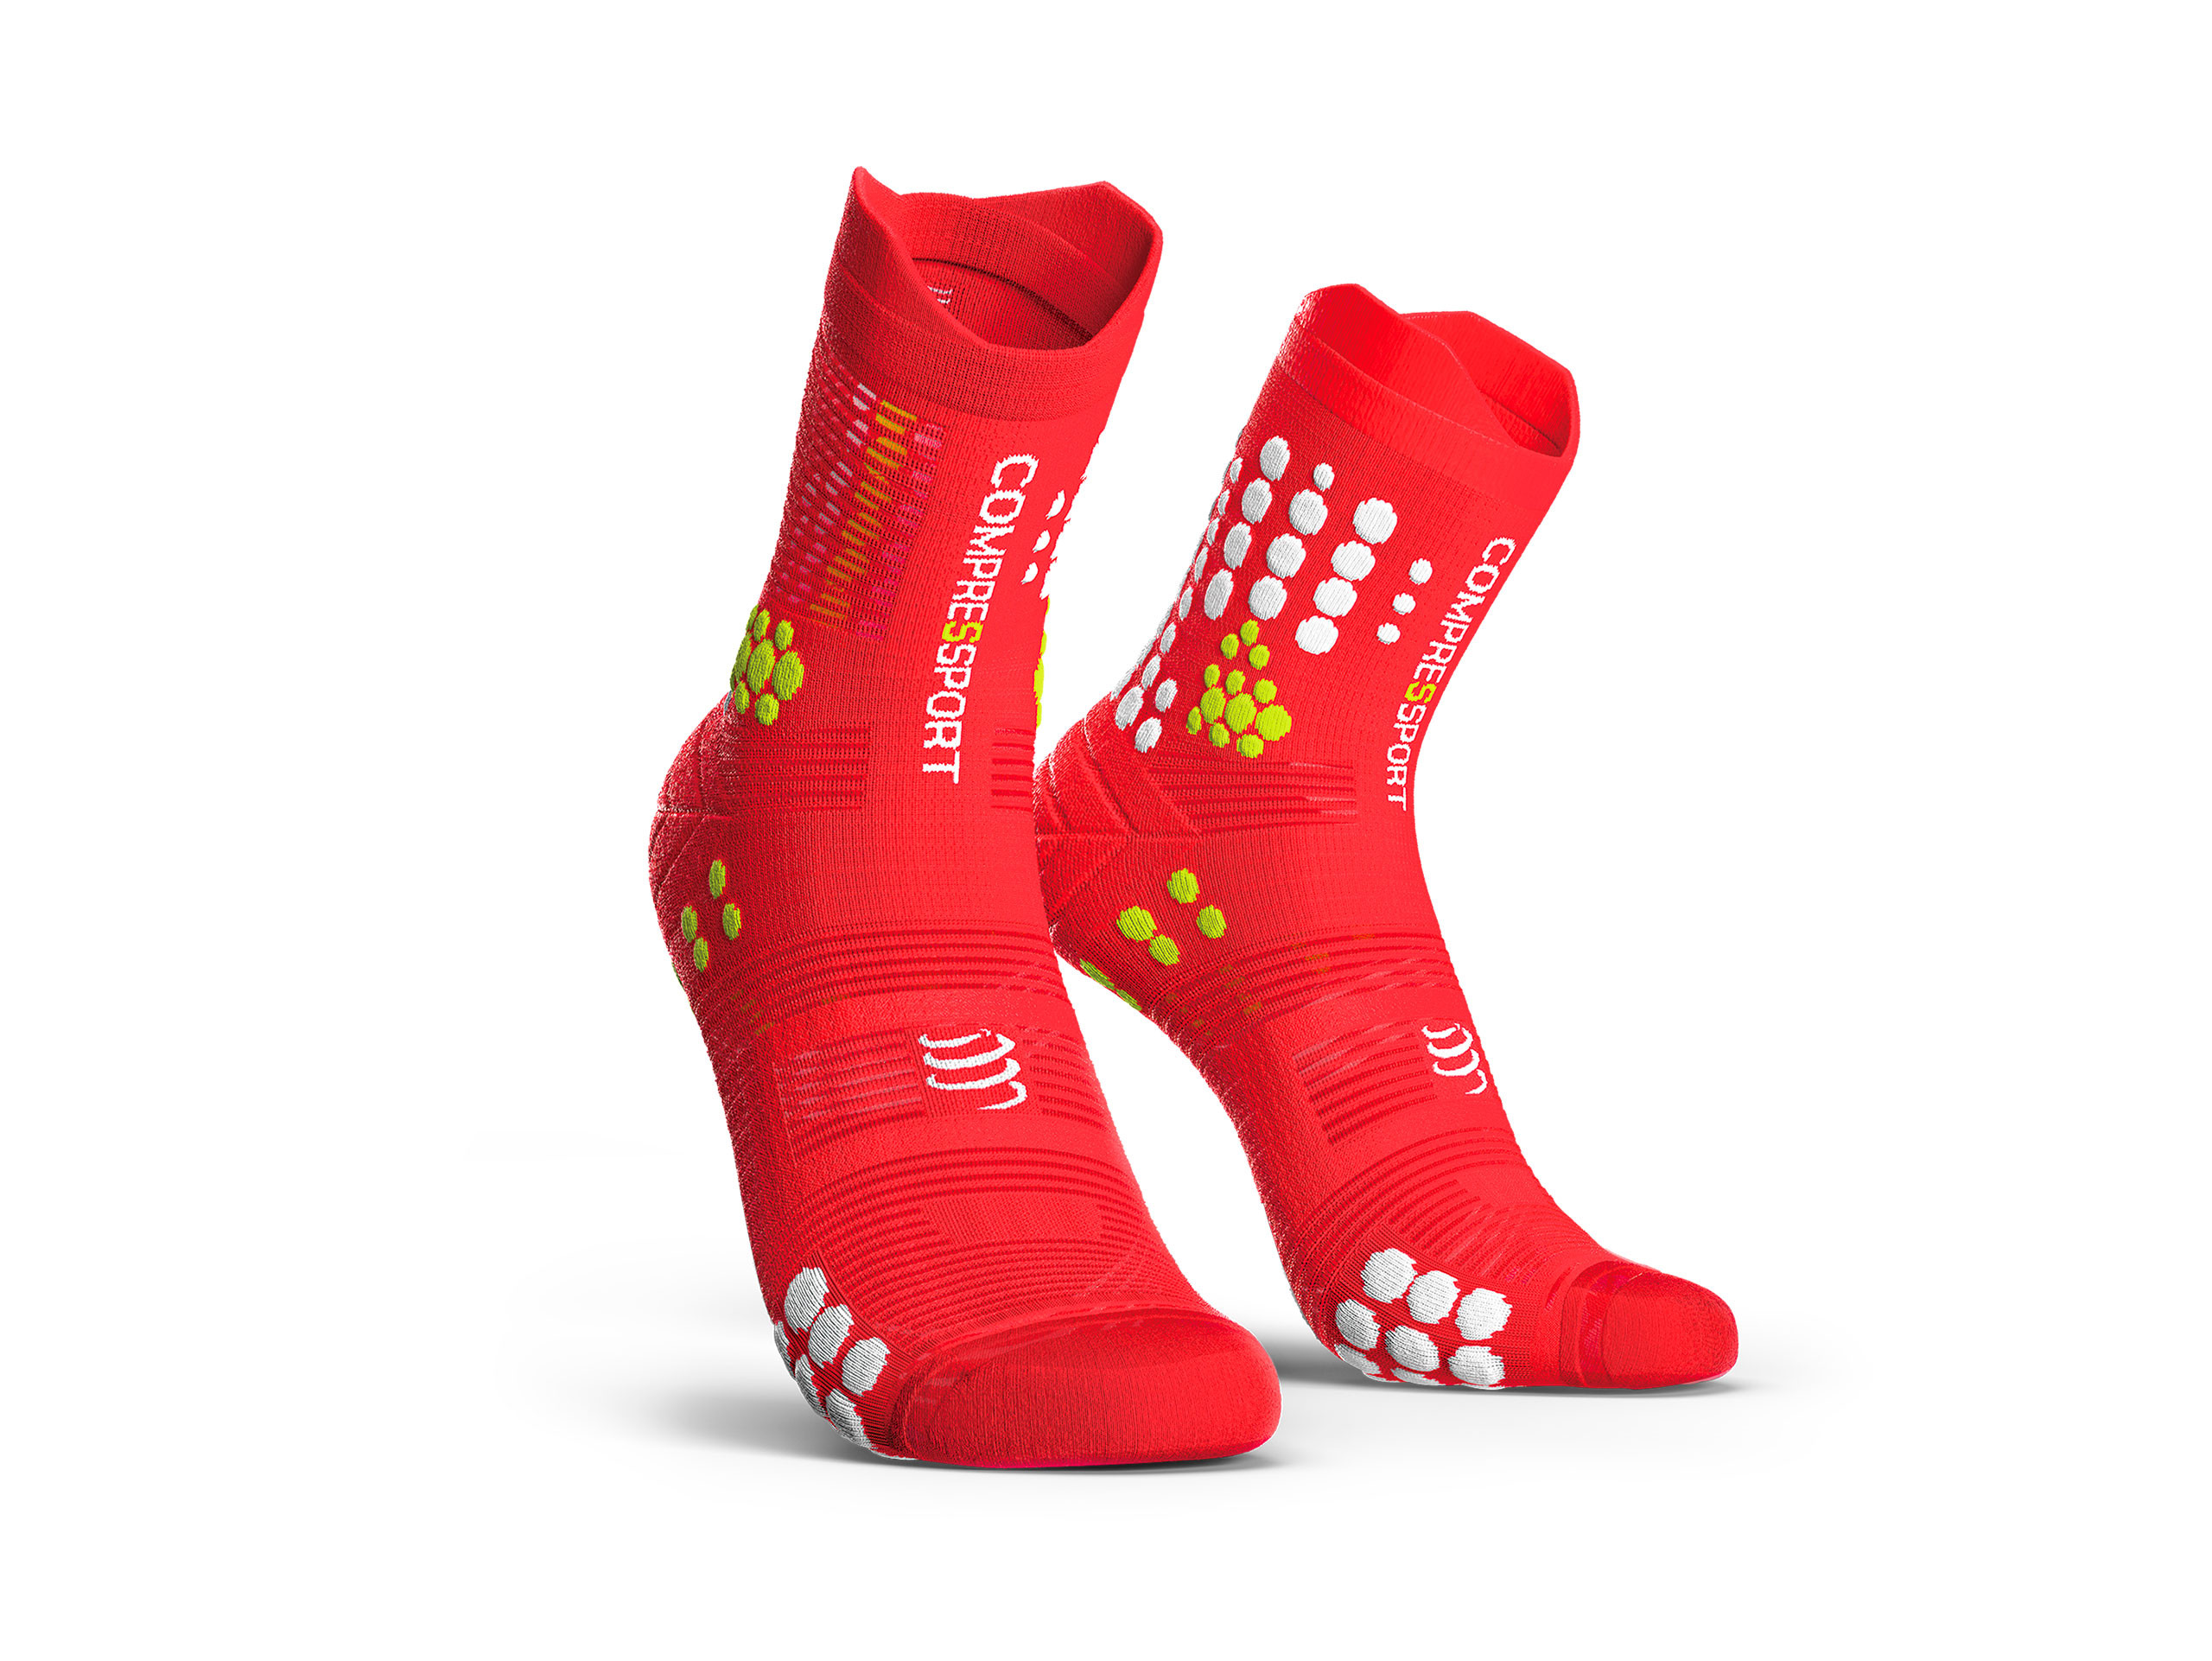 Pro racing socks v3.0 red/white